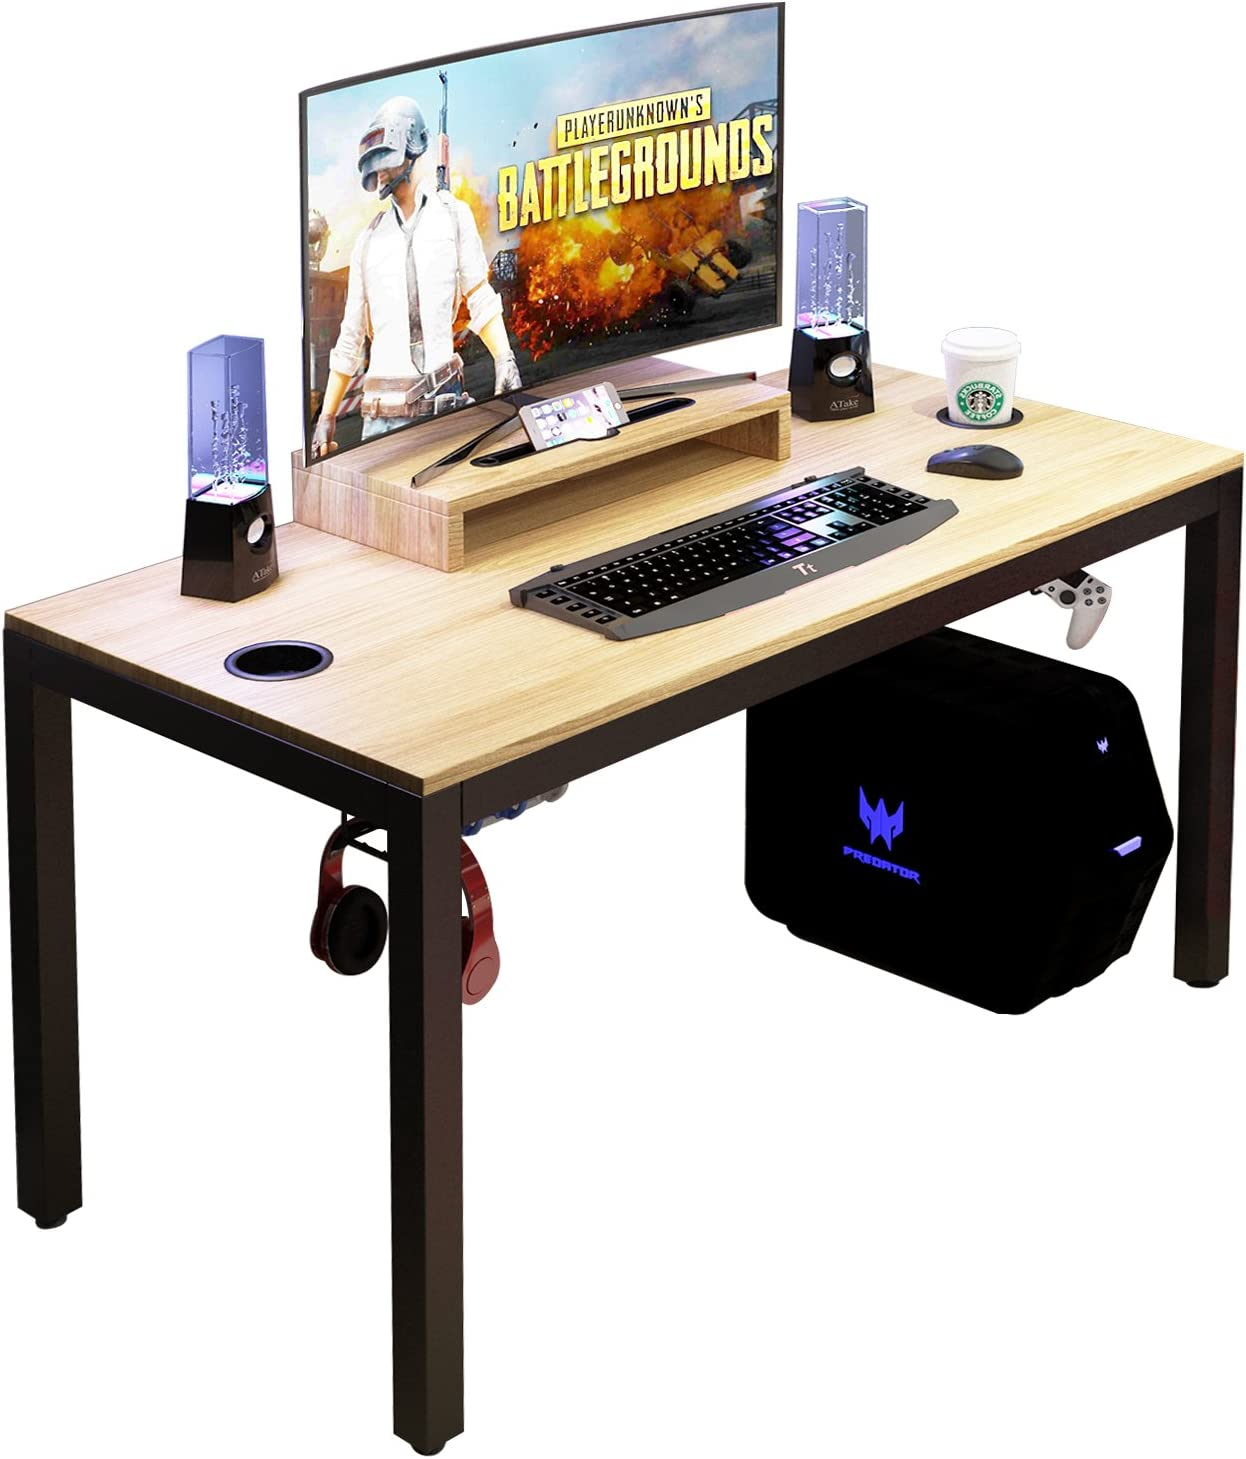 sogesfurniture Gaming Computer Desk Table 品質検査済 47 inches 最新号掲載アイテム